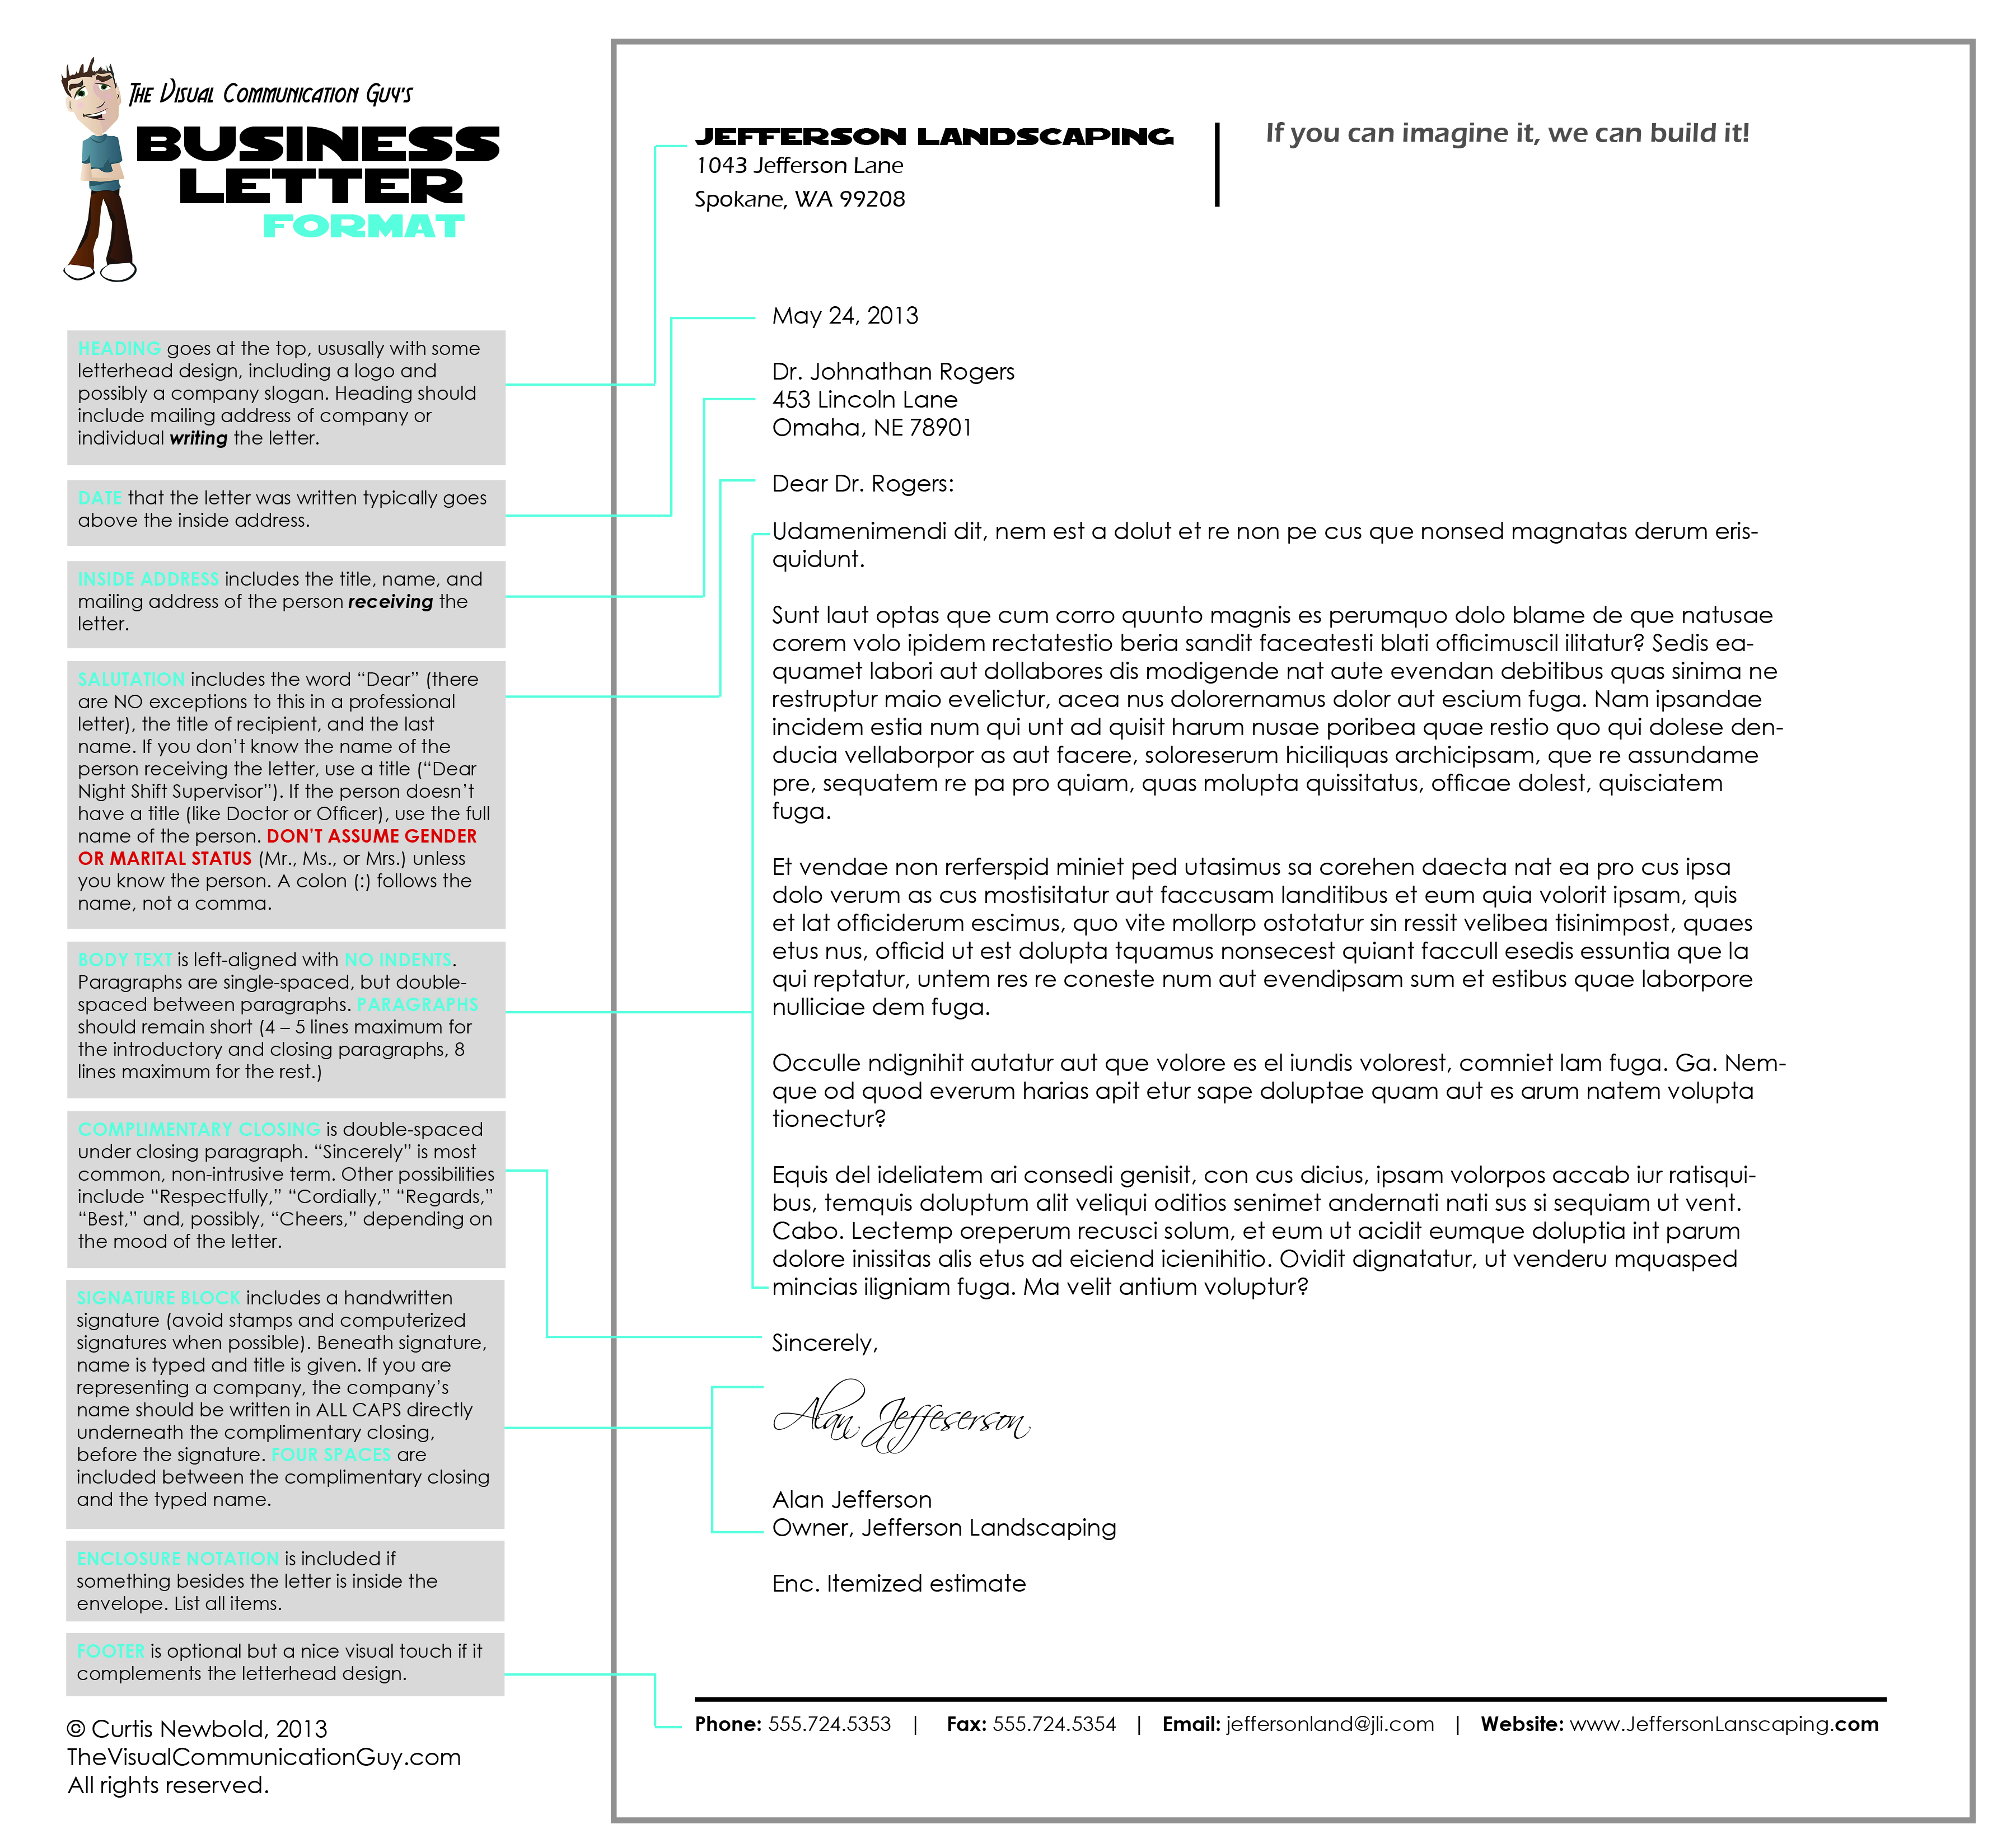 How to Write a Letter in Business Letter Format – The Visual ...